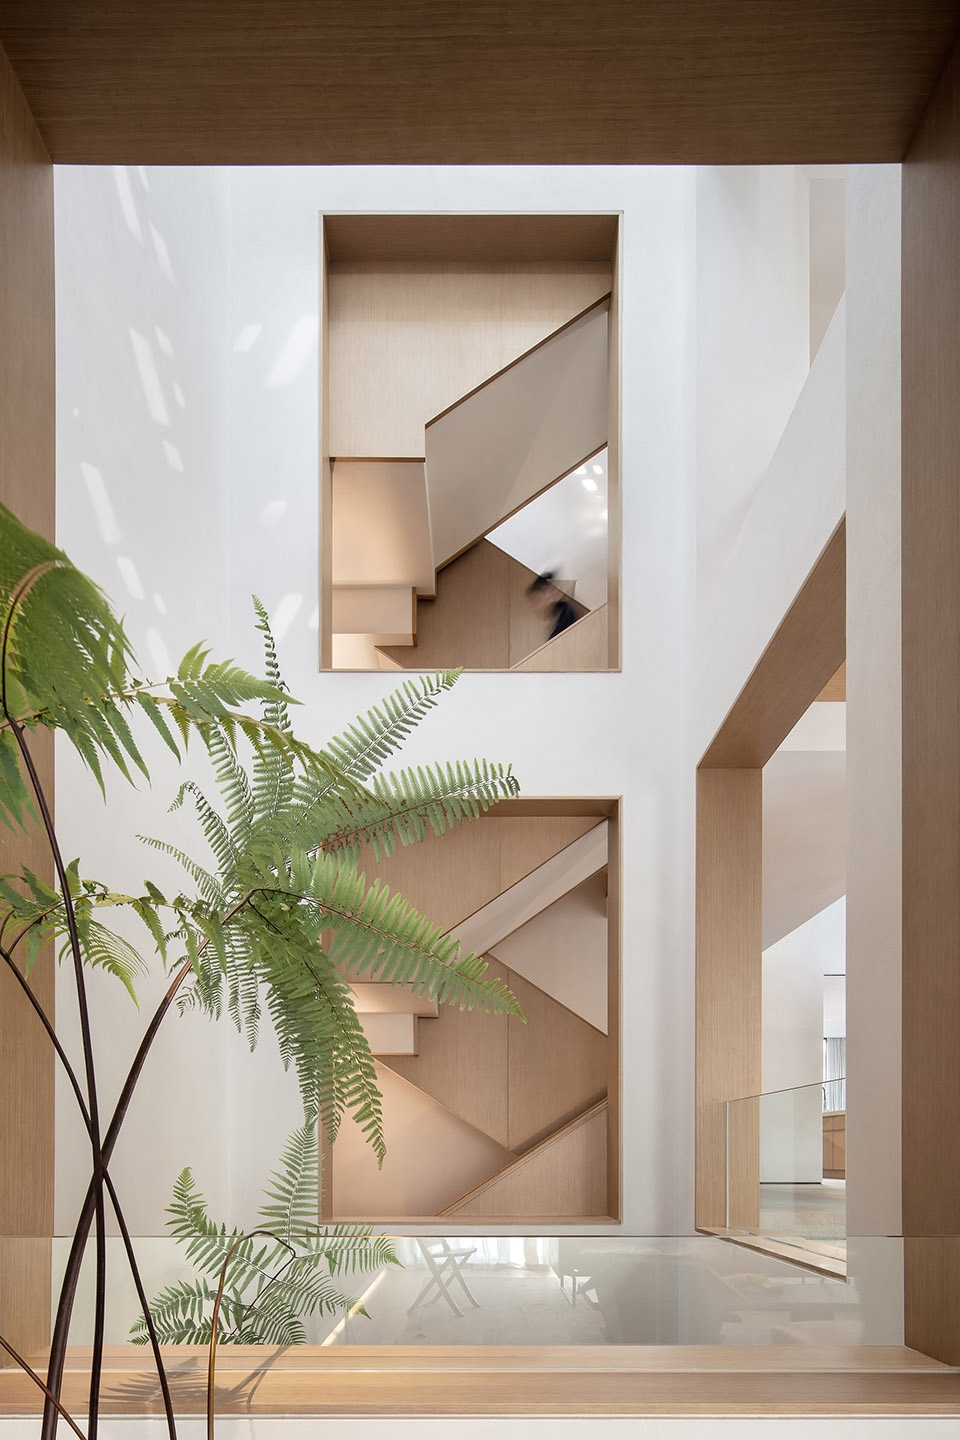 023-a-desired-home-china-by-liang-architecture-studio-960x1440.jpg